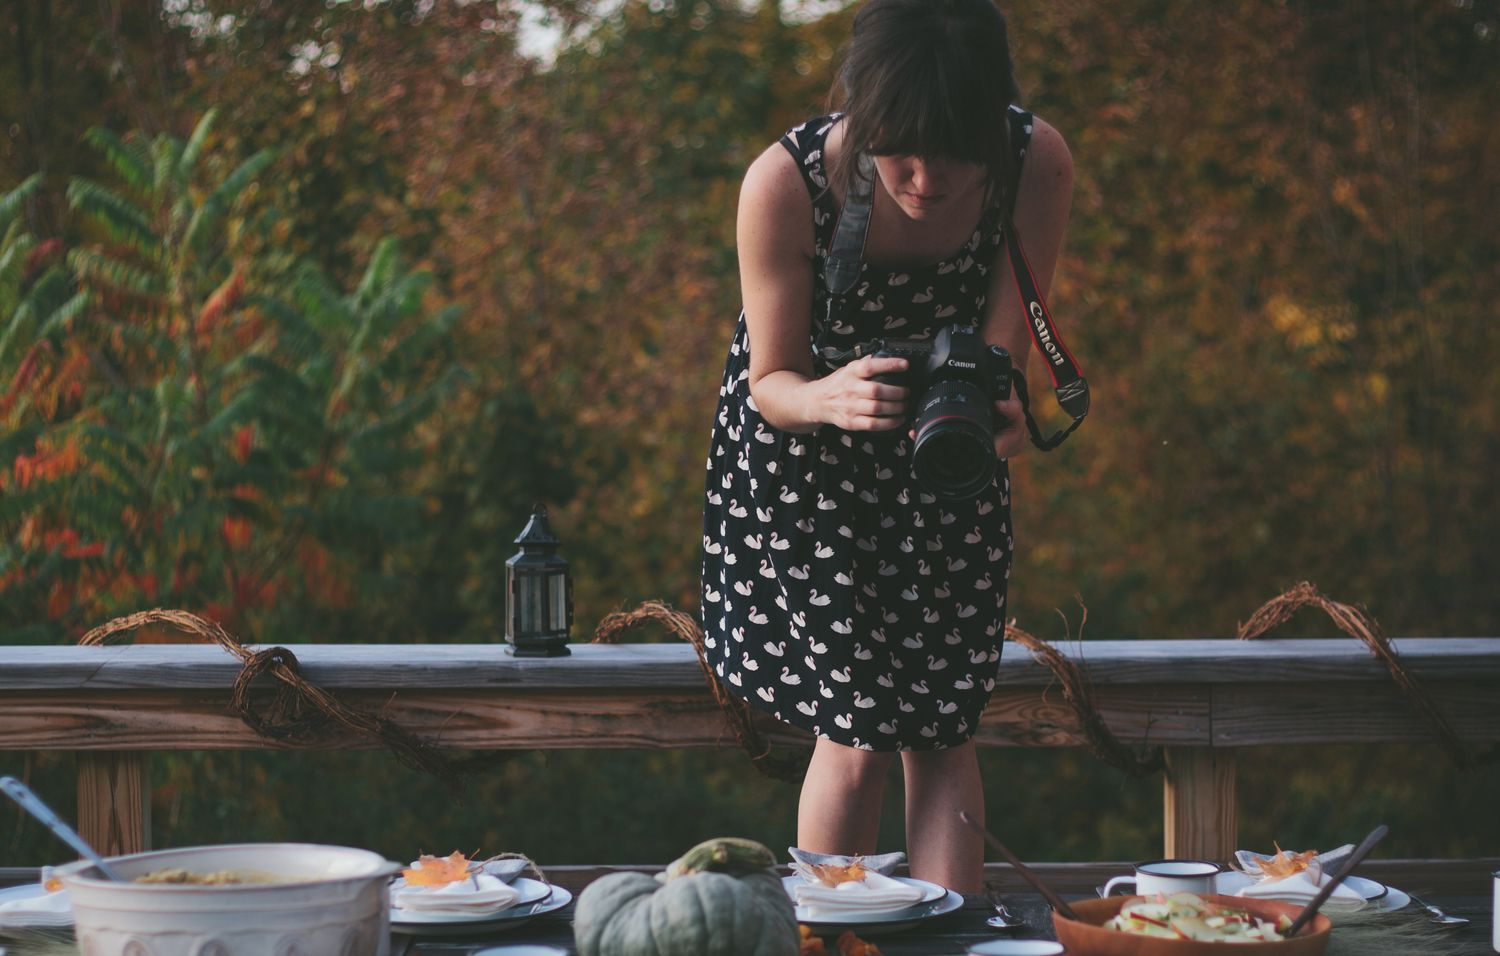 First We Eat - Food Styling and Photography Workshops